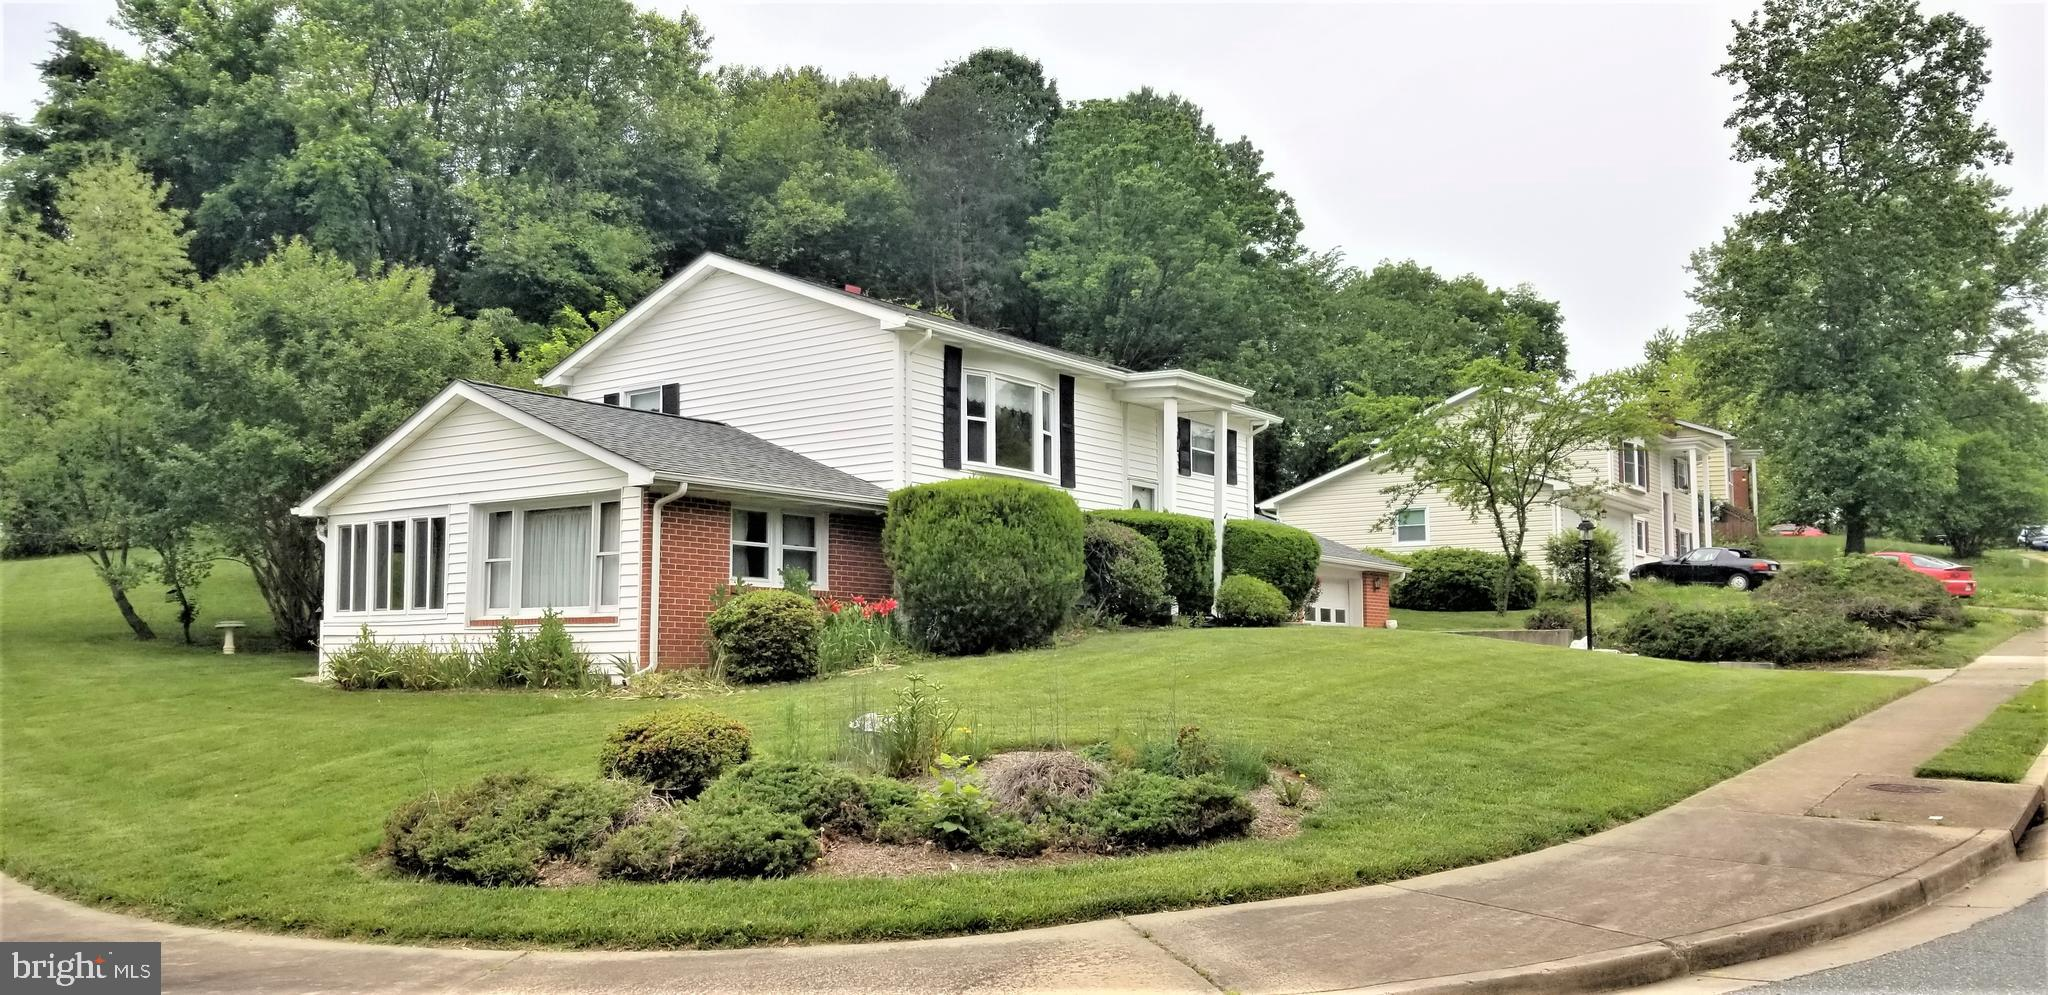 OFFER submission deadline is 8pm Tue 5/20. Please submit Highest and Best by deadline.   This wonderful home is being sold by the original owner. It has been lovingly maintained and is just waiting for its new owner's updates.  Gorgeous corner lot in great commuter location...ez access to I95 and commuter lots. 3 bedrooms and 2 full baths. Separate dining room, large living AND family rooms.  New roof, heat, and water heater.